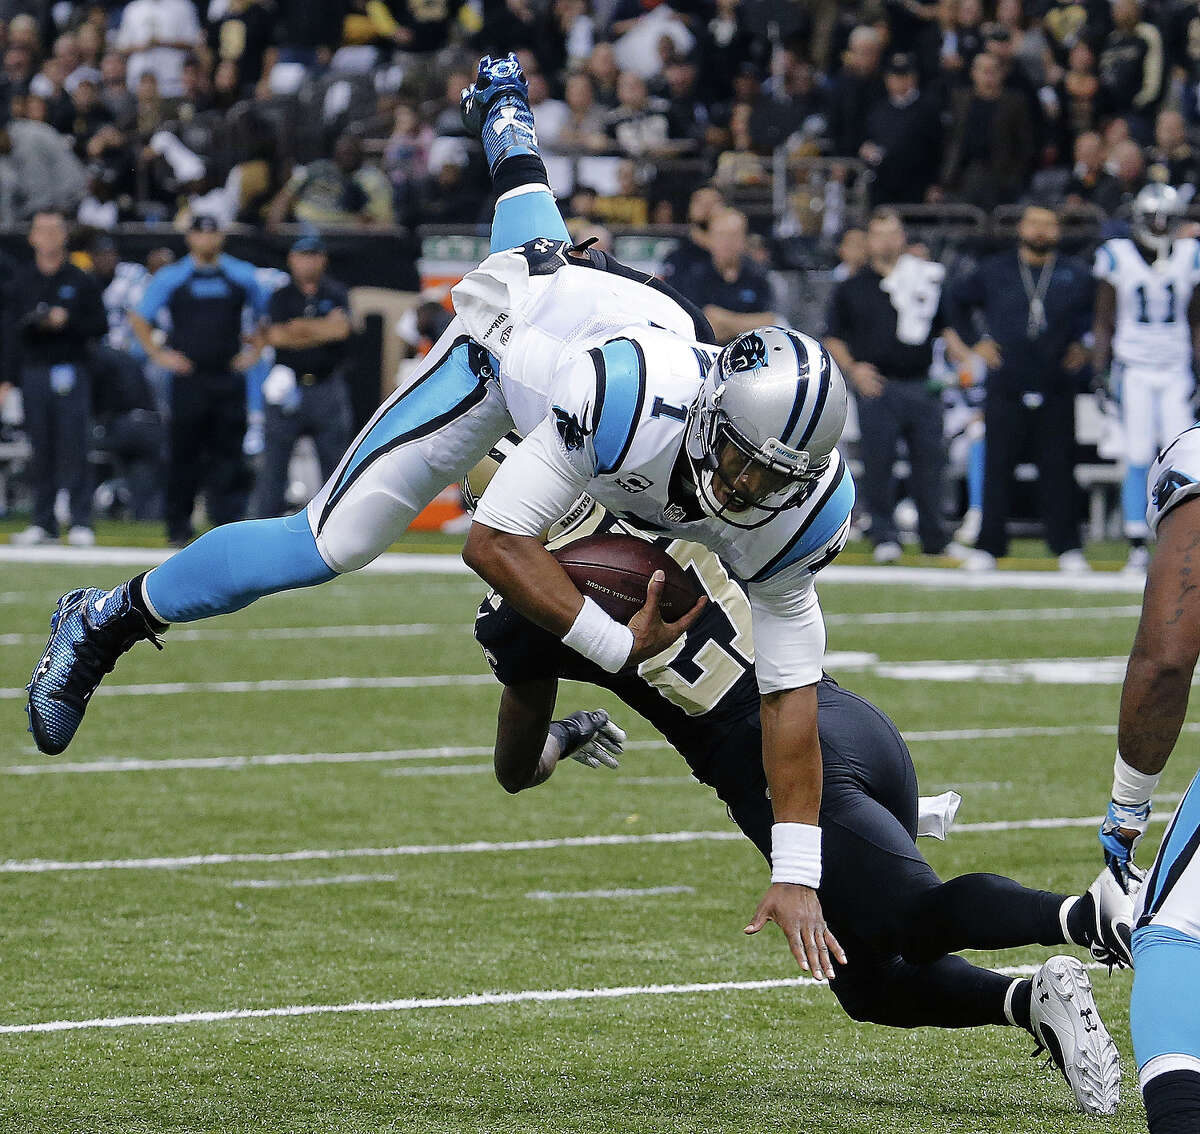 Carolina Panthers quarterback Cam Newton (1) is upended as he carries against New Orleans Saints free safety Malcolm Jenkins (27) in the first half of an NFL football game in New Orleans, Sunday, Dec. 8, 2013. (AP Photo/Bill Haber)